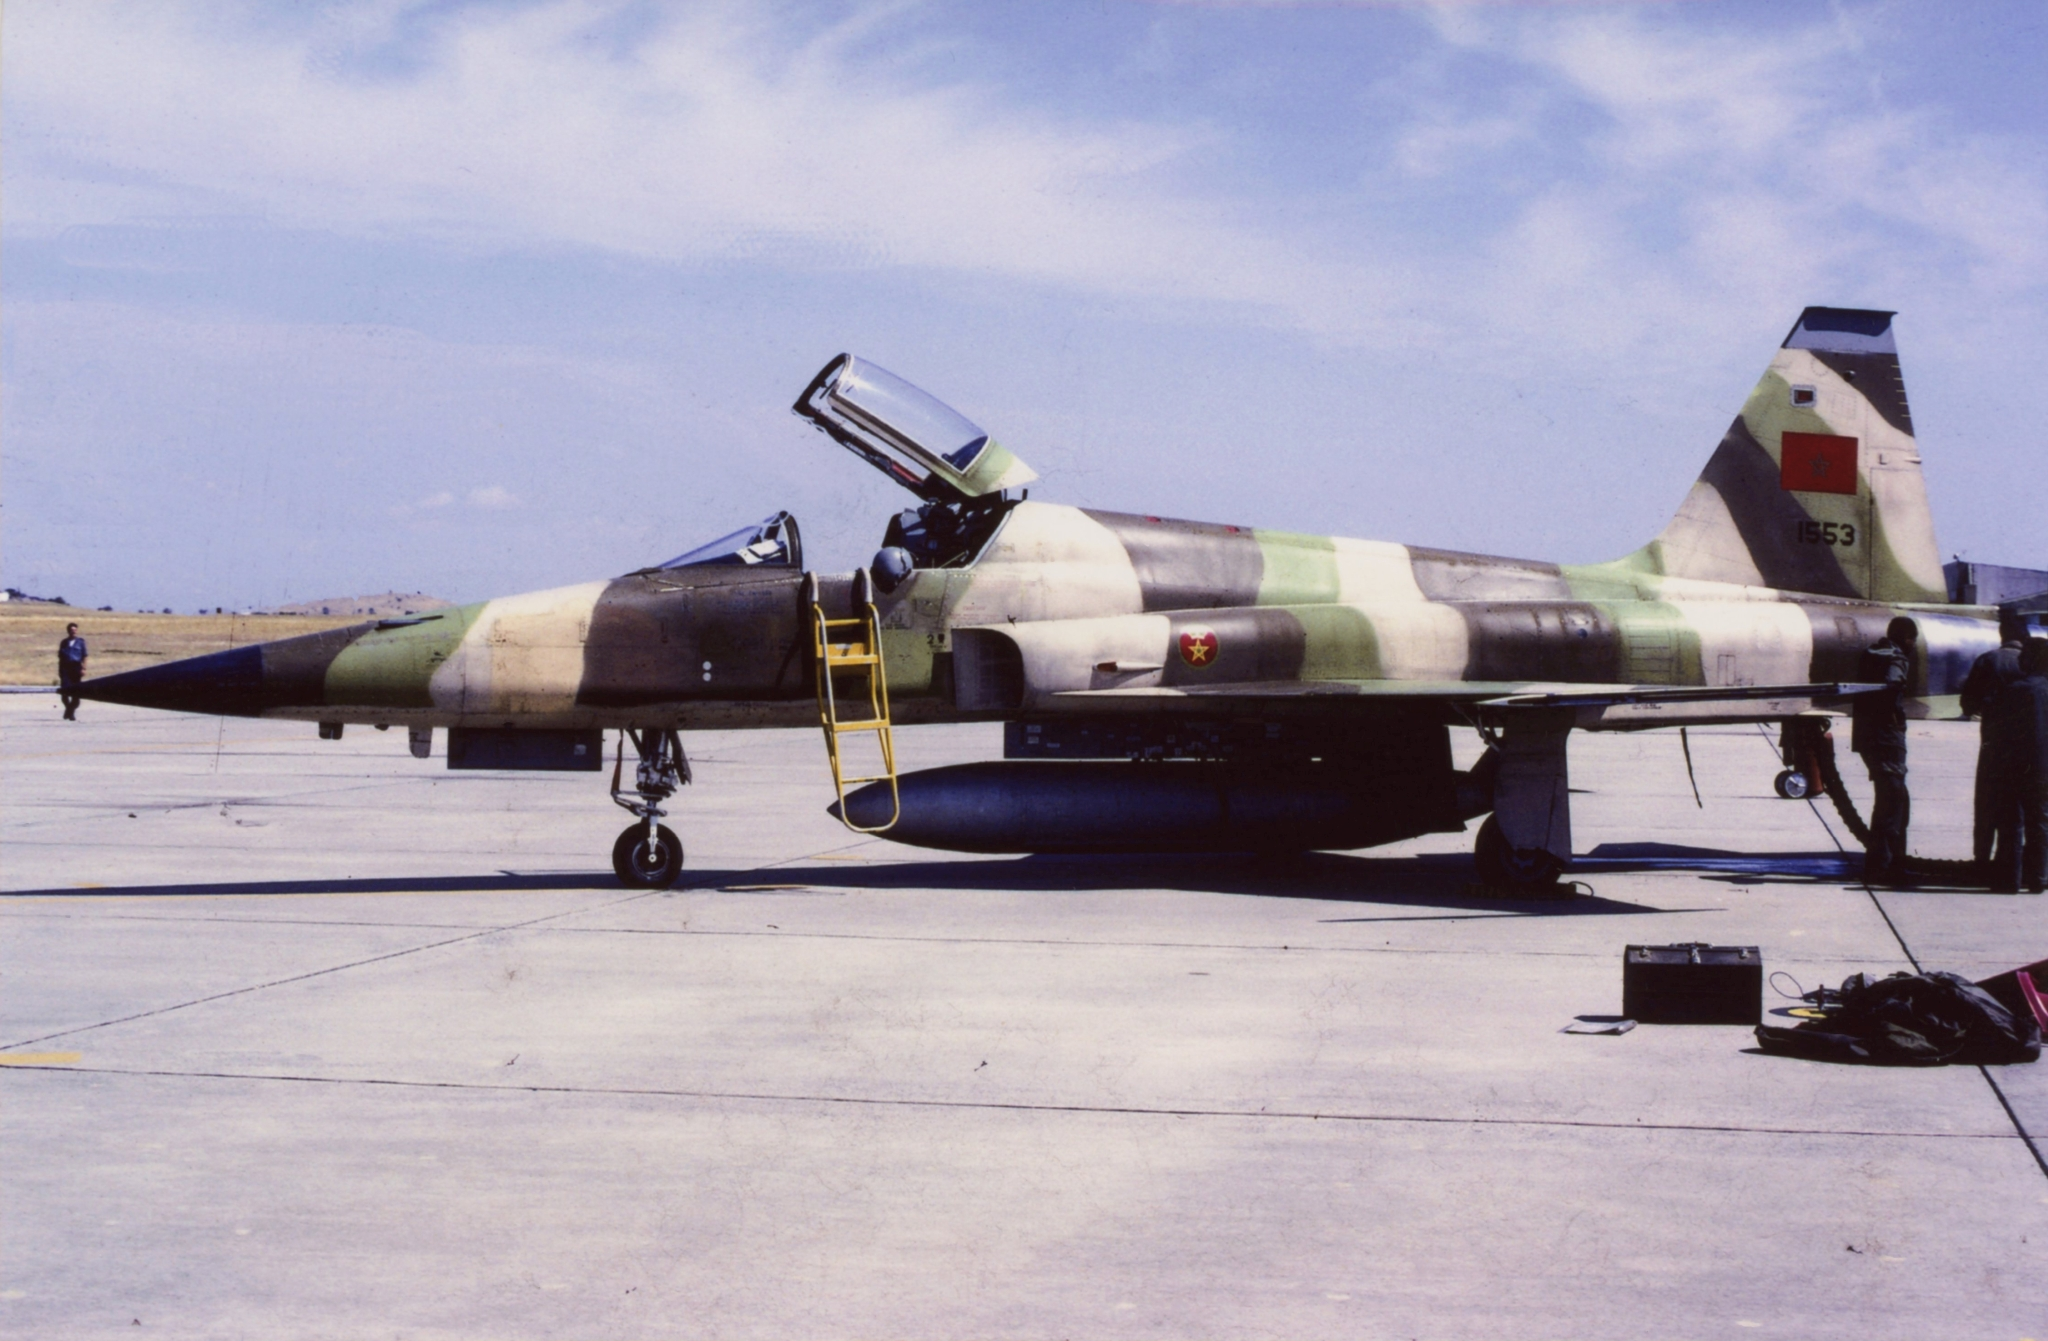 FRA: Photos F-5 marocains / Moroccan F-5  - Page 13 49928645887_5f38447bac_o_d